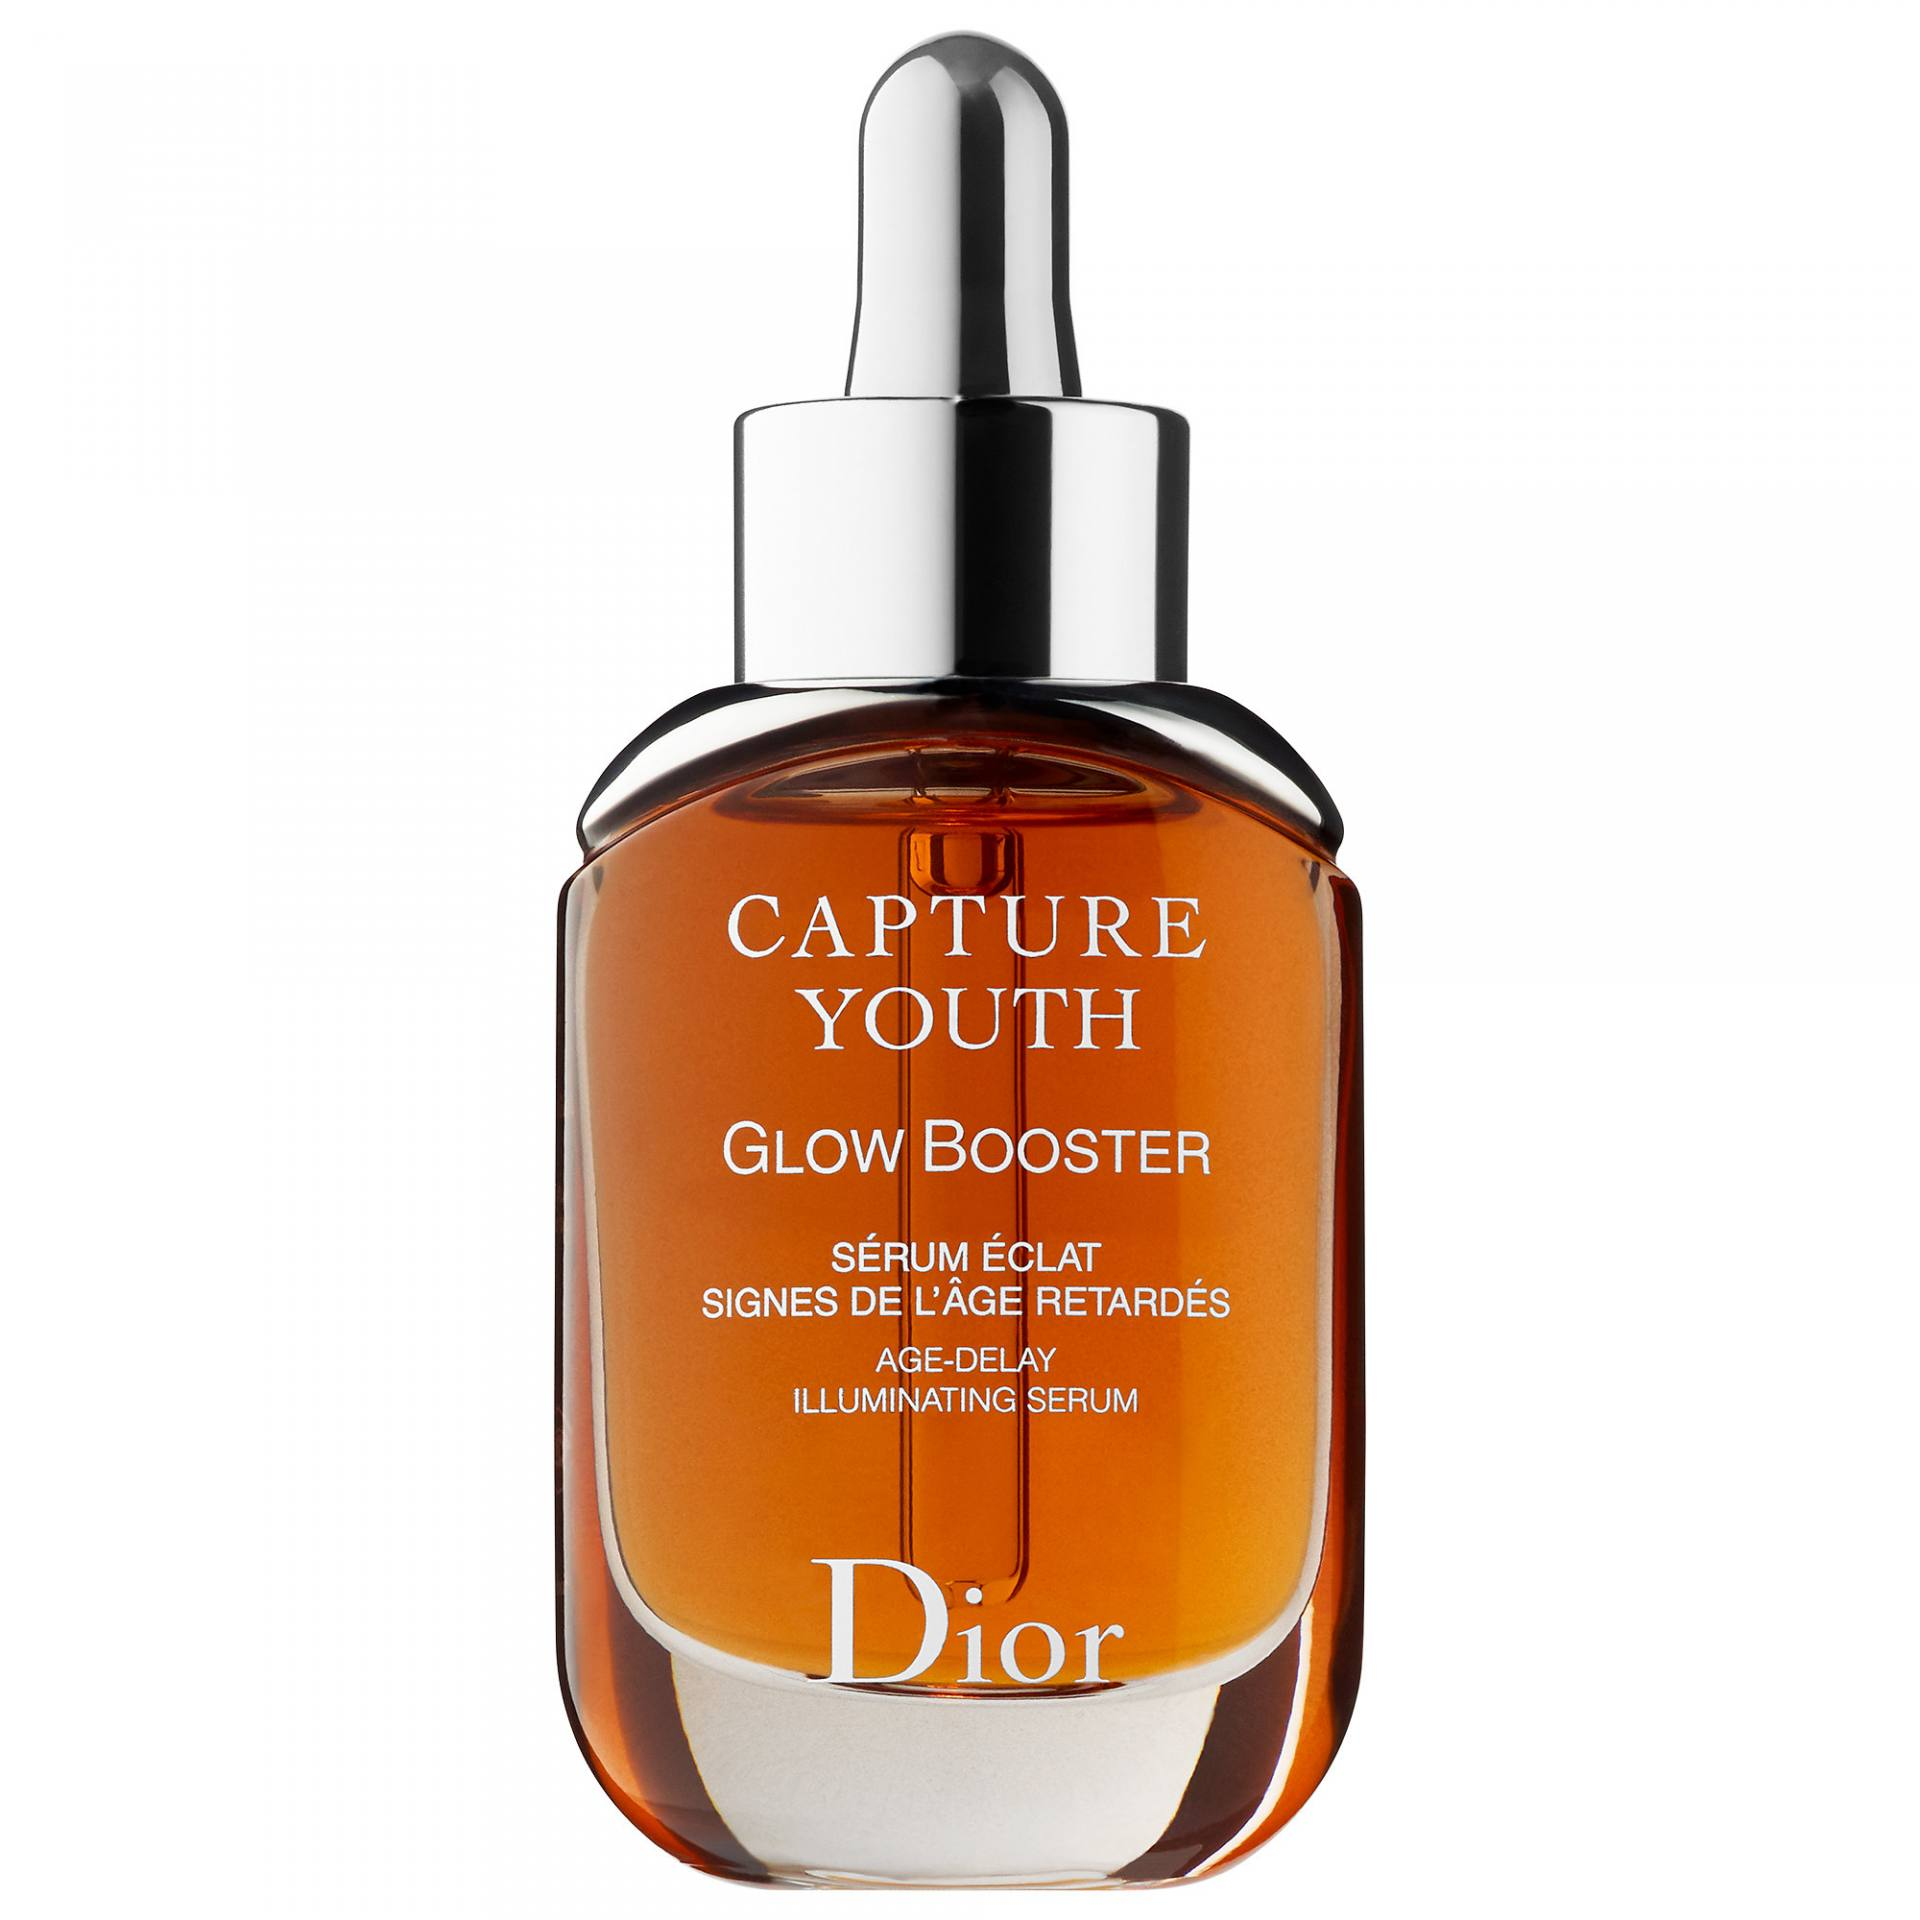 Glow Booster Age-Delay Illuminating Serum